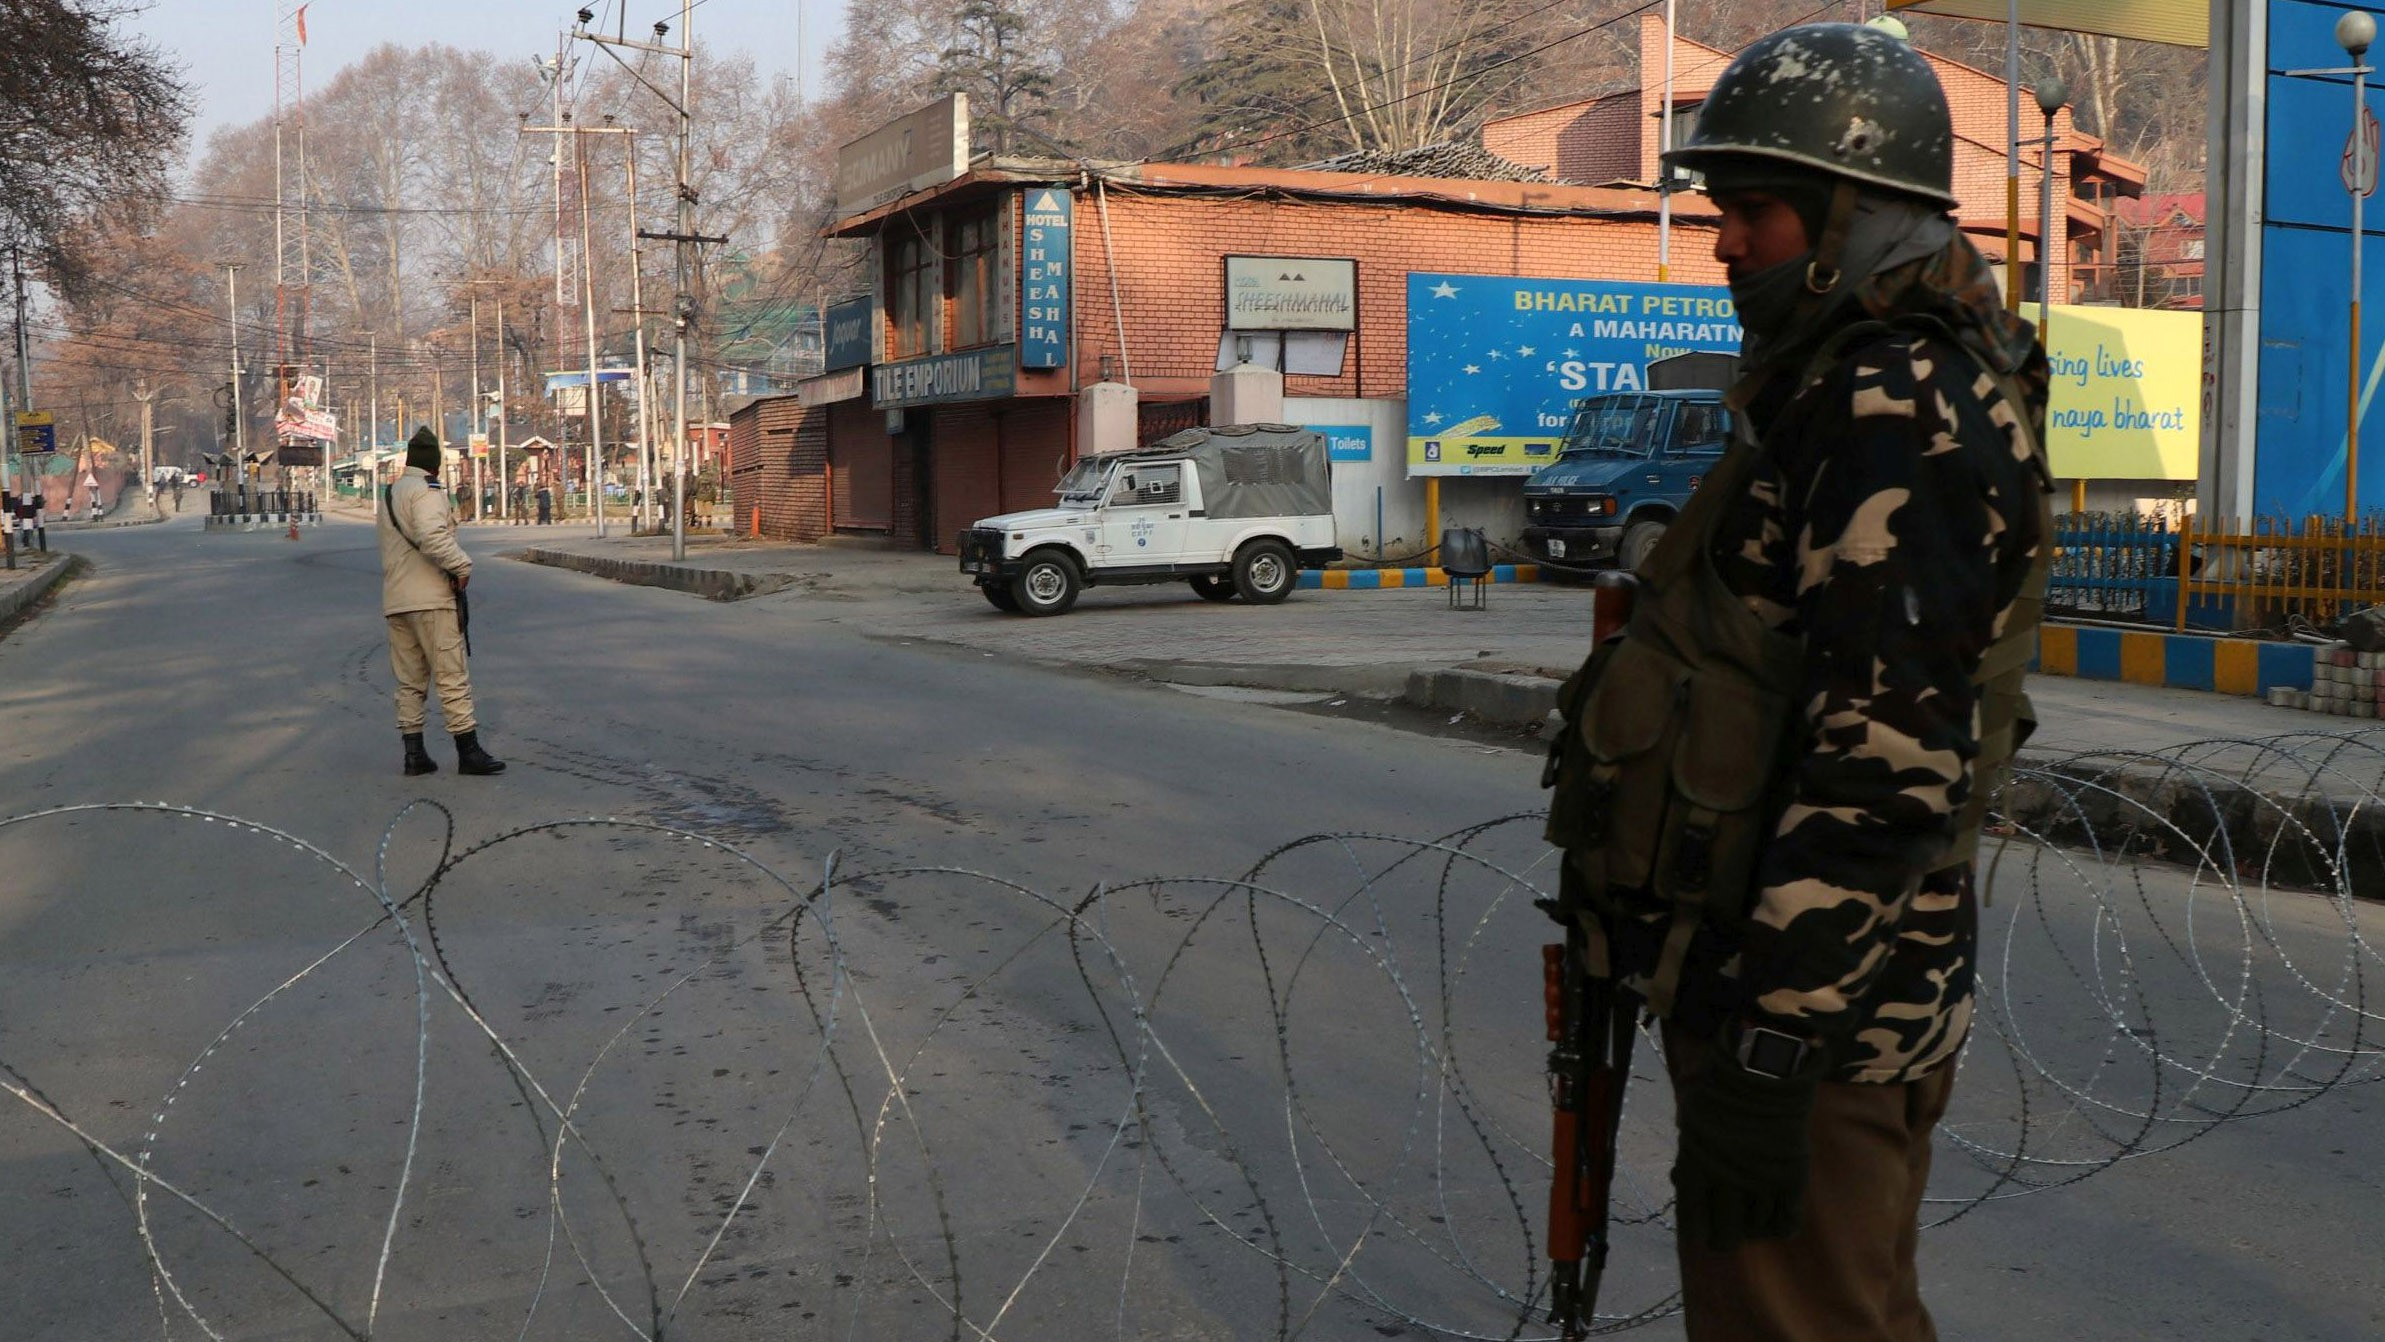 J&K: Act in Haste